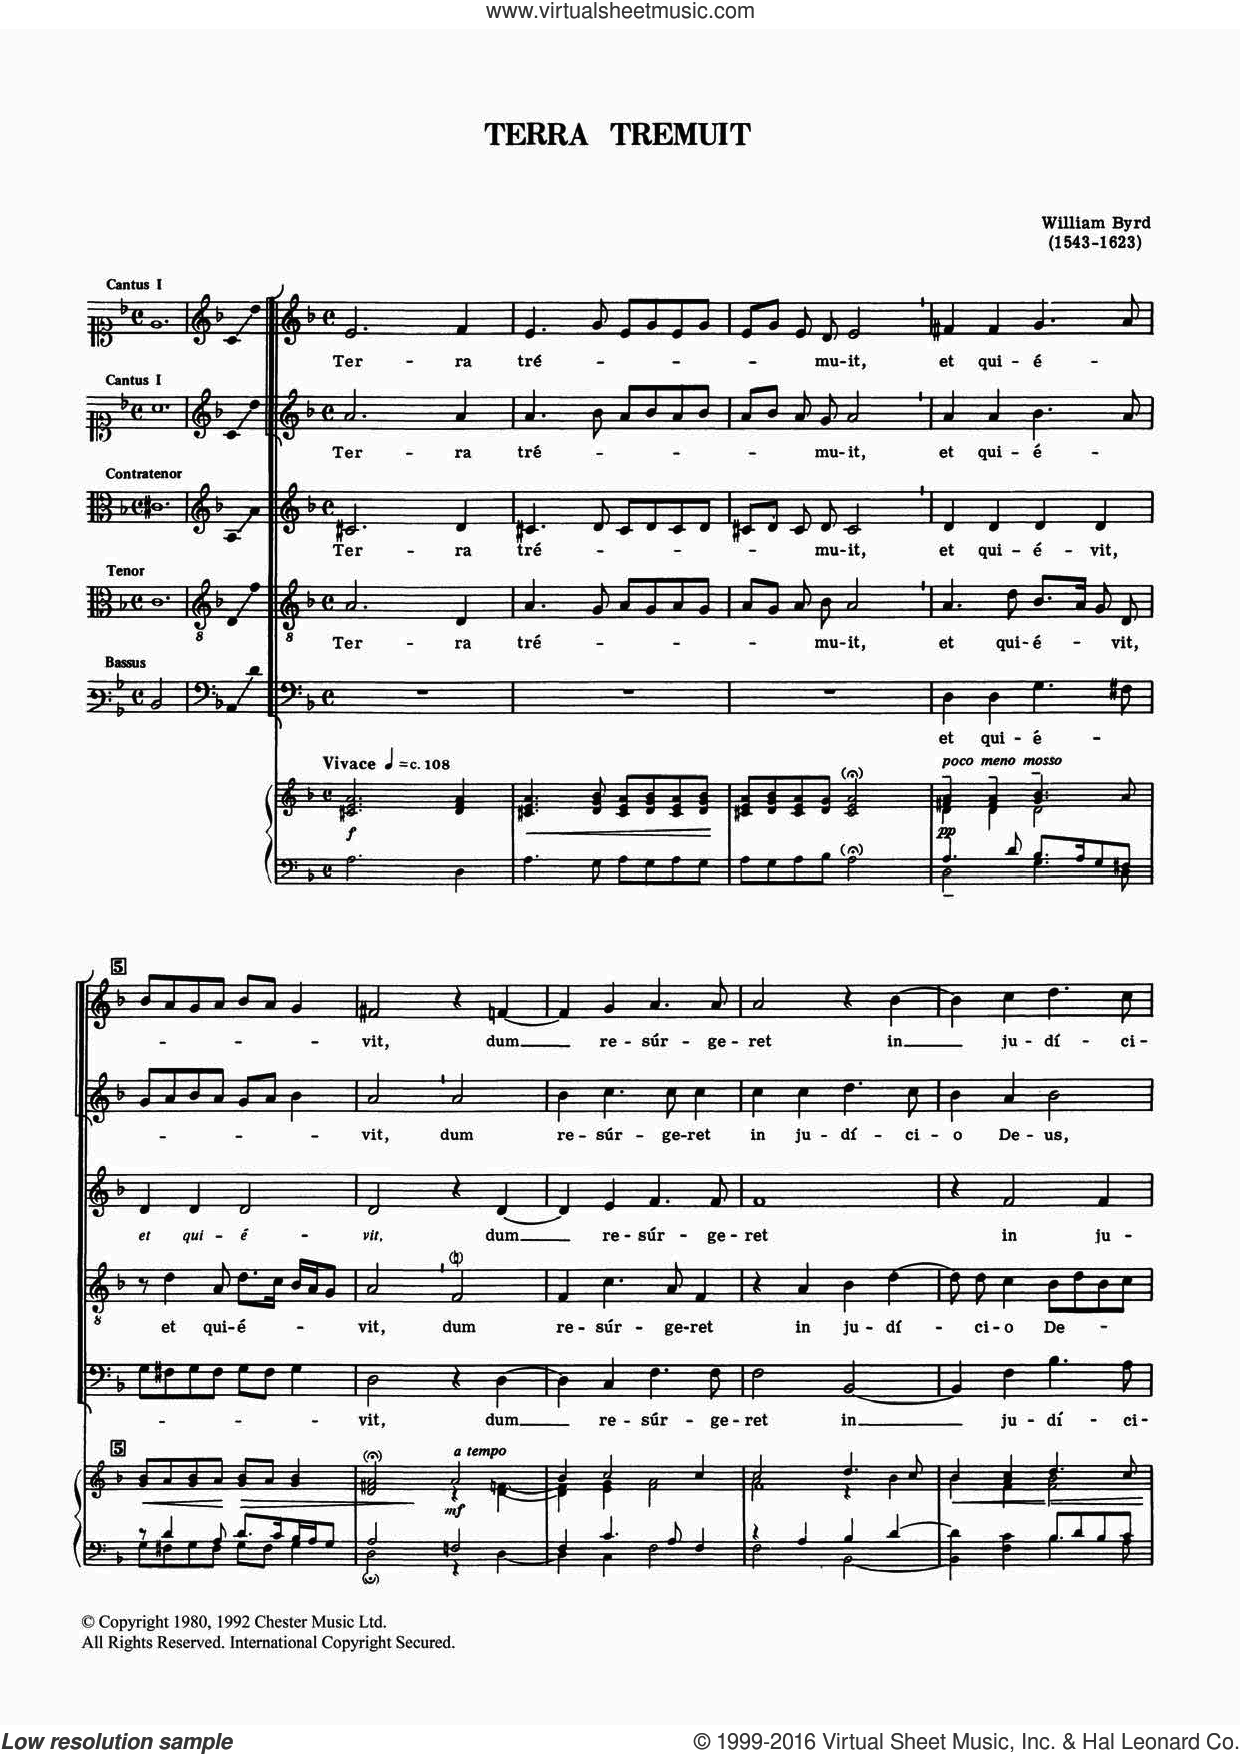 Terra Tremuit sheet music for voice, piano or guitar by William Byrd, classical score, intermediate. Score Image Preview.